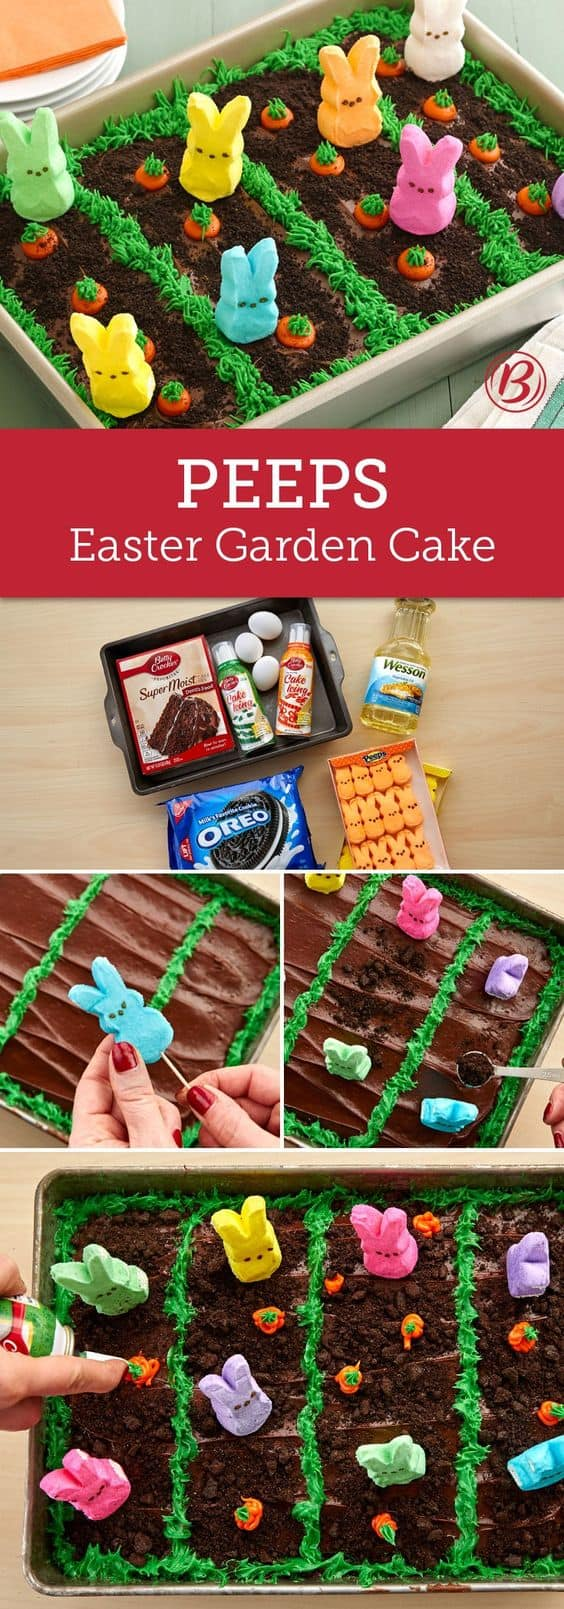 14 Easy Easter Dessert Recipes Best Ideas For Kids And For A Crowd